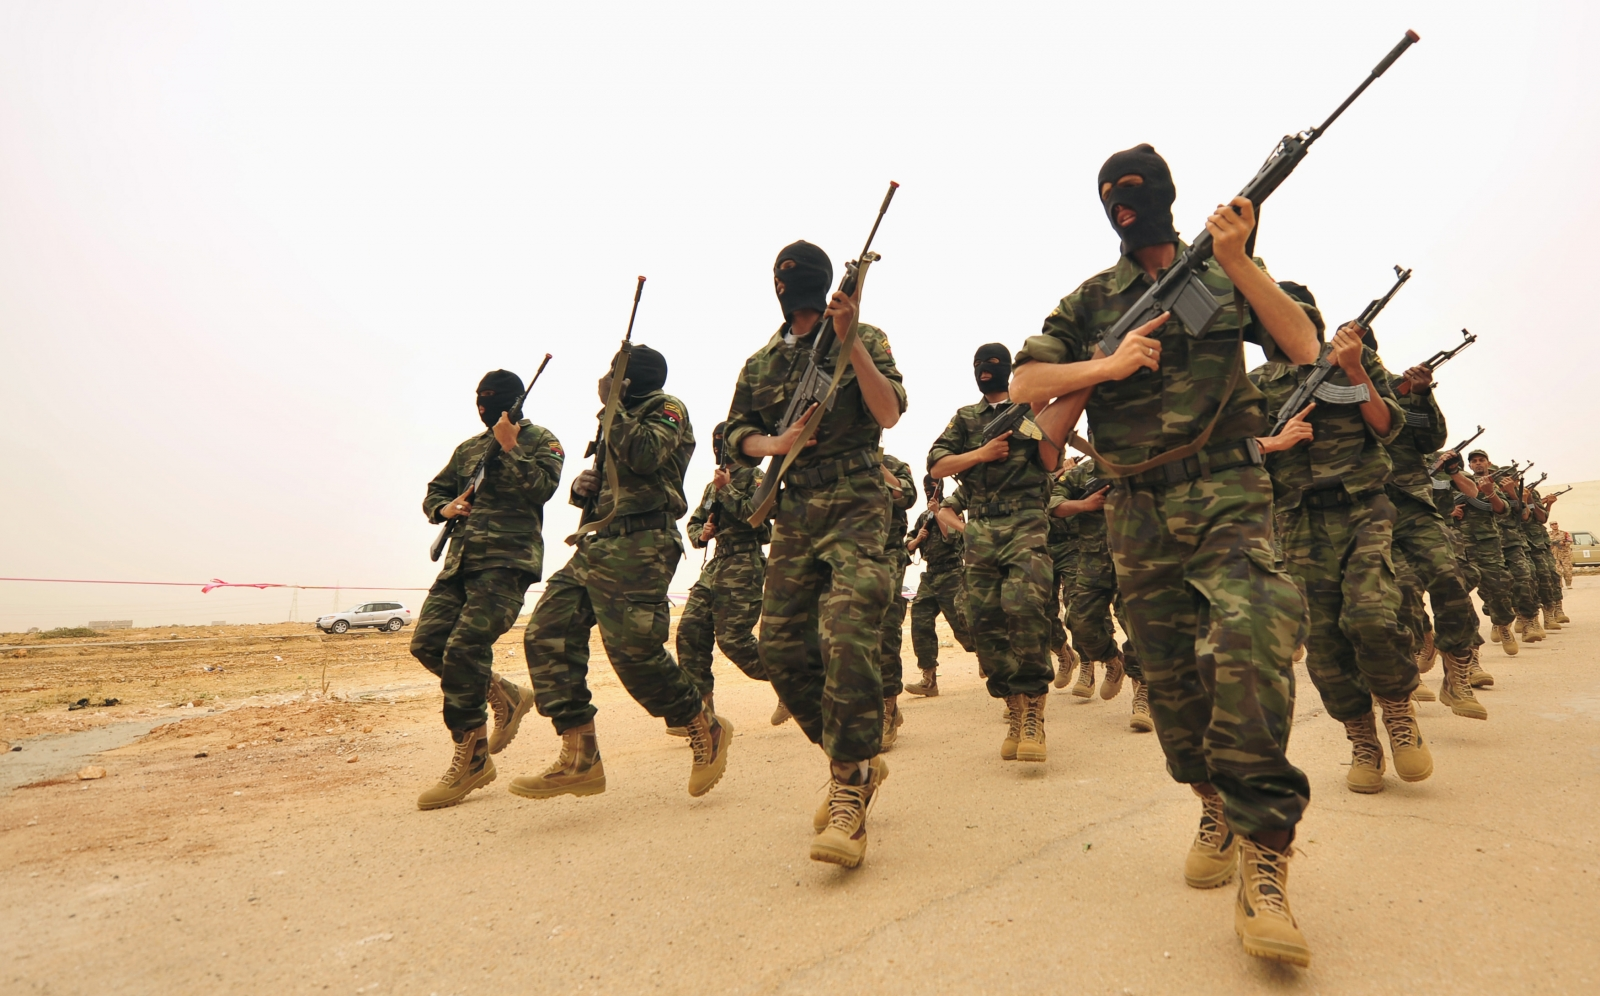 Libyan special forces